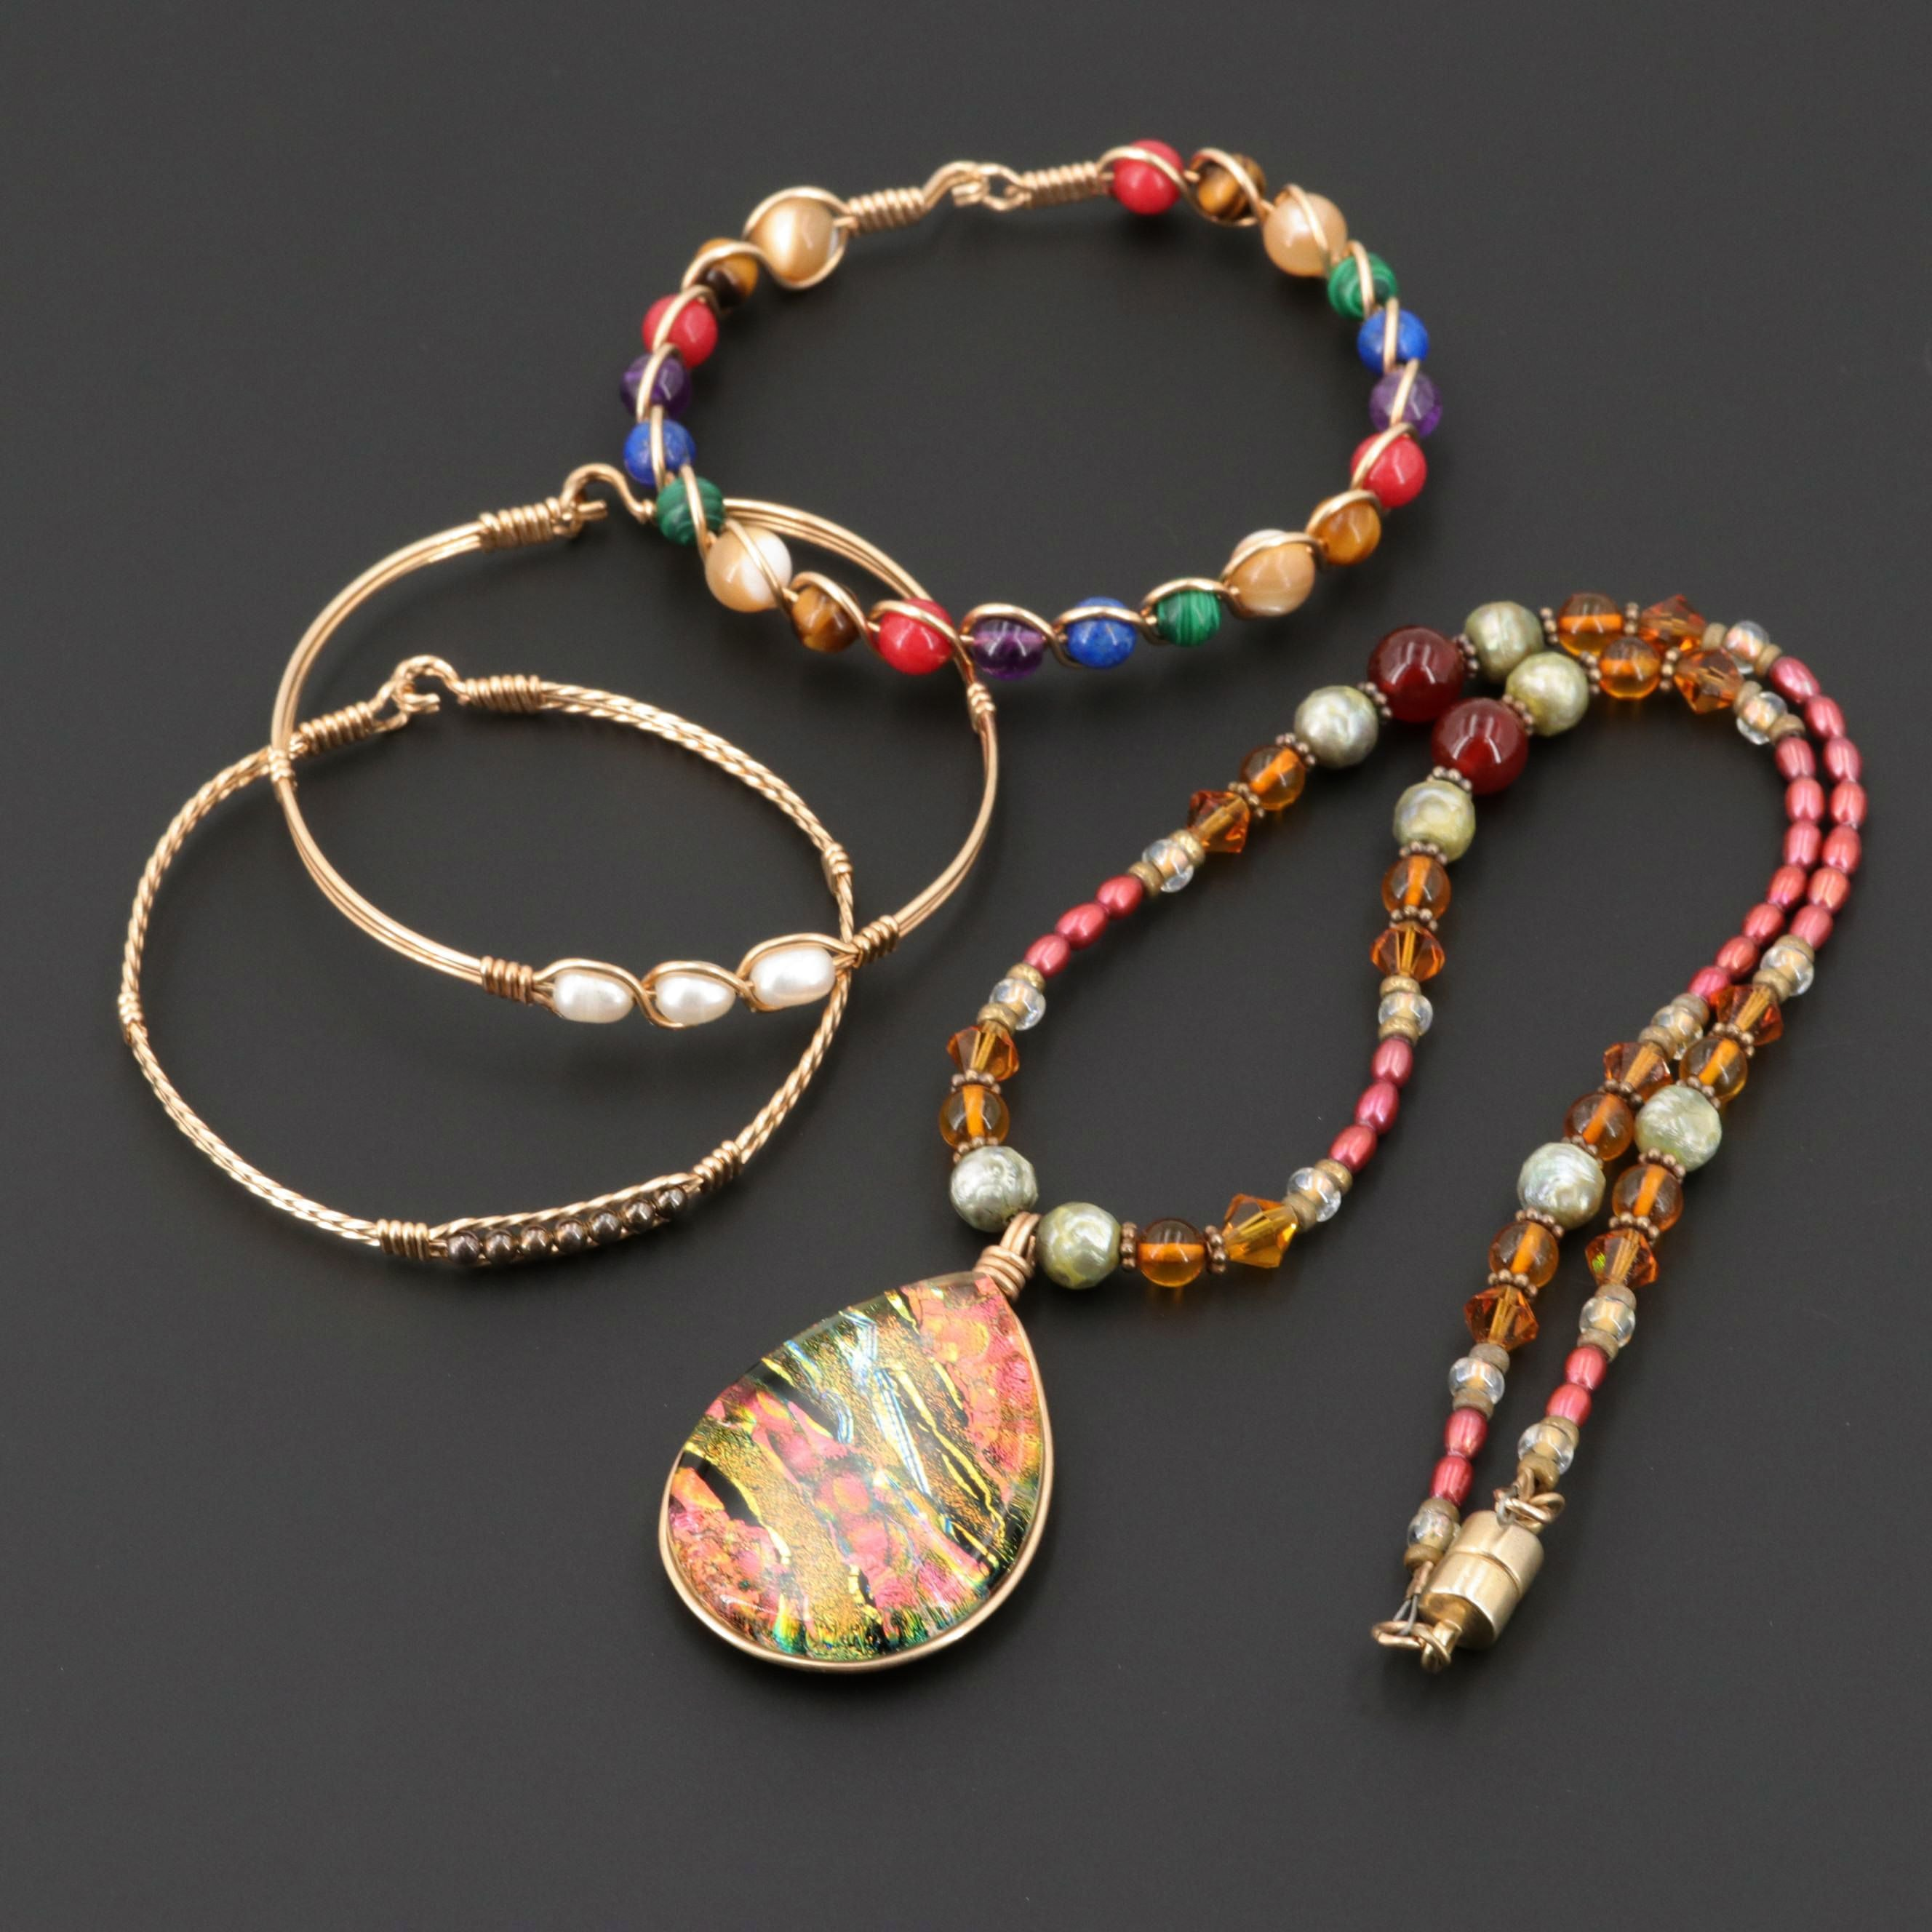 Cultured Pearl, Quartz Variety, Lapis Lazuli and Glass Necklace and Bracelets